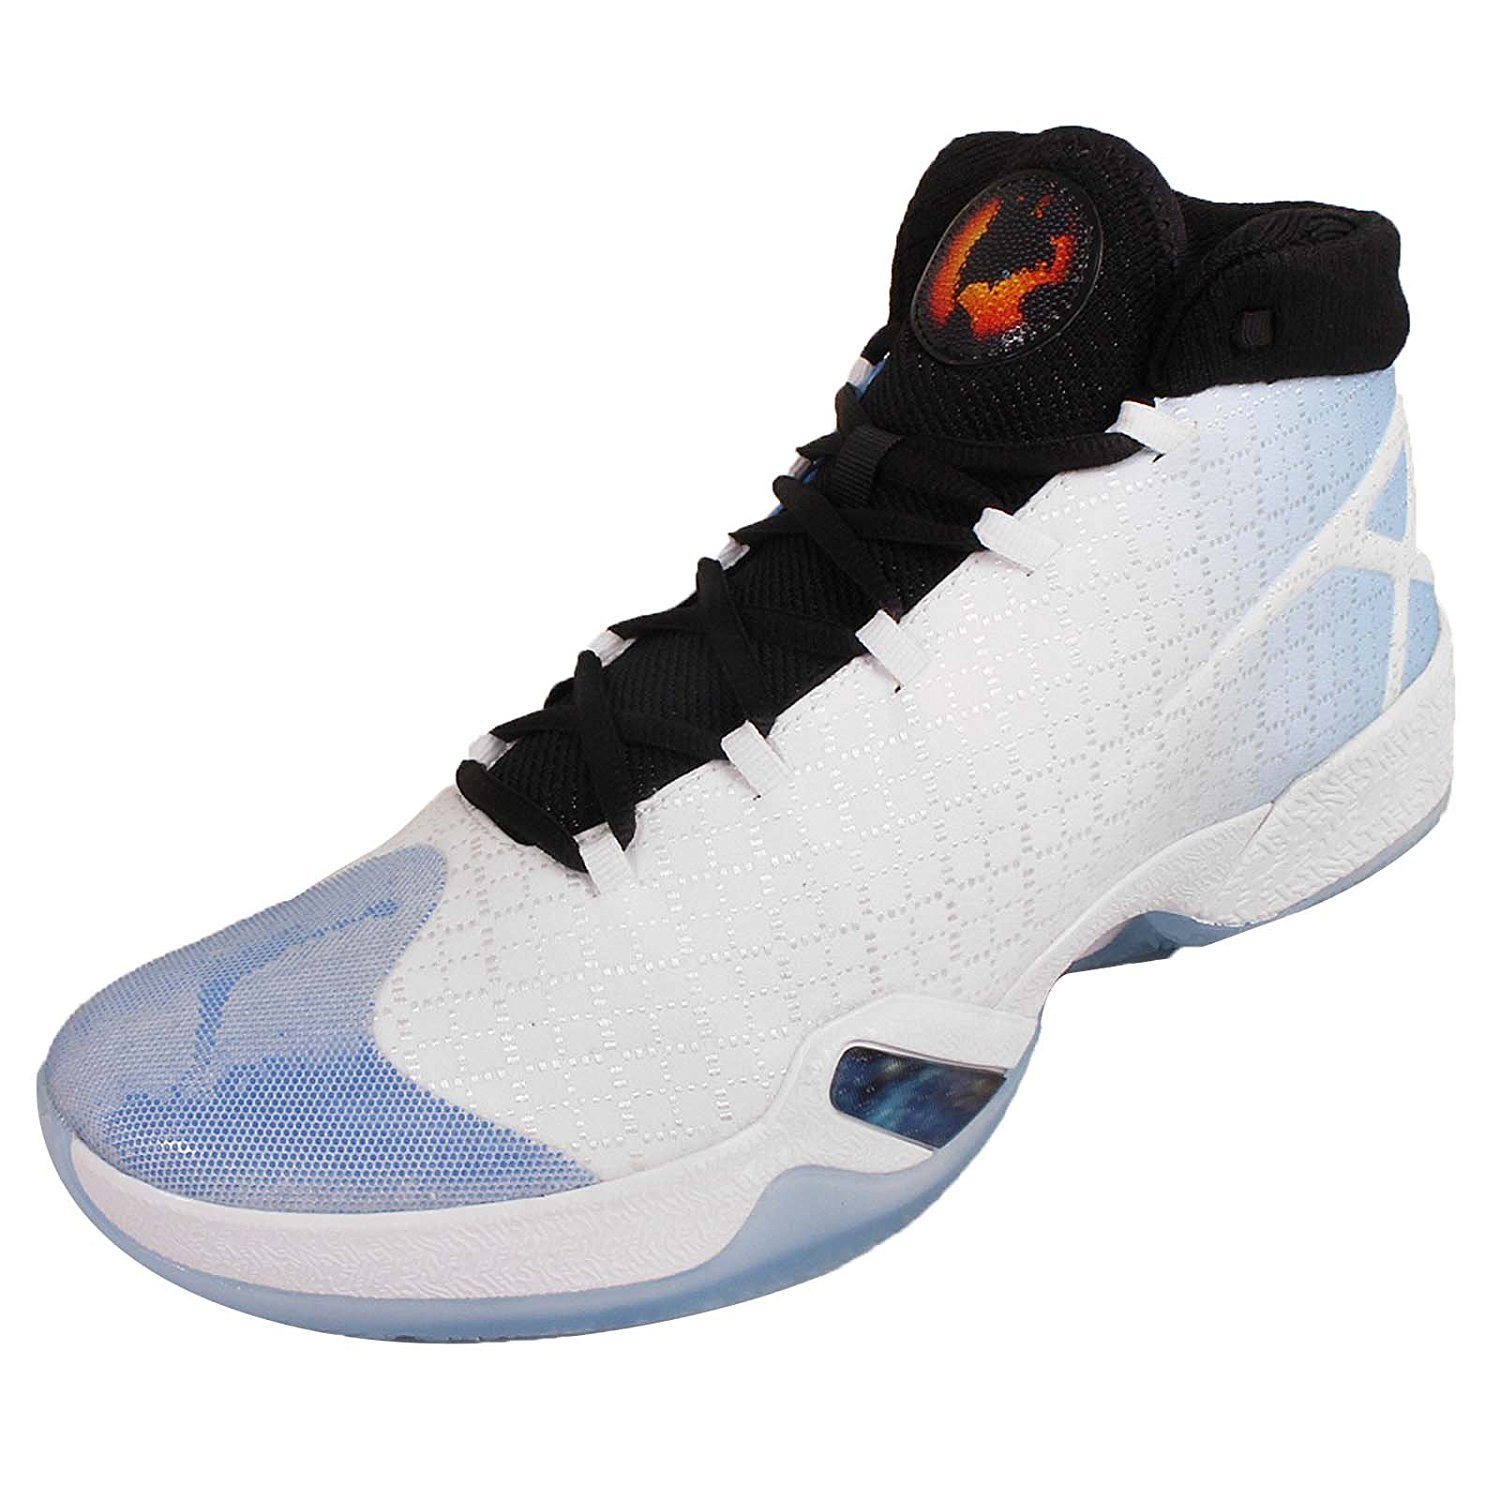 NIKE Air Jordan XXX UNC Basketball Shoes Sneakers (10, White/Black-University Blue)